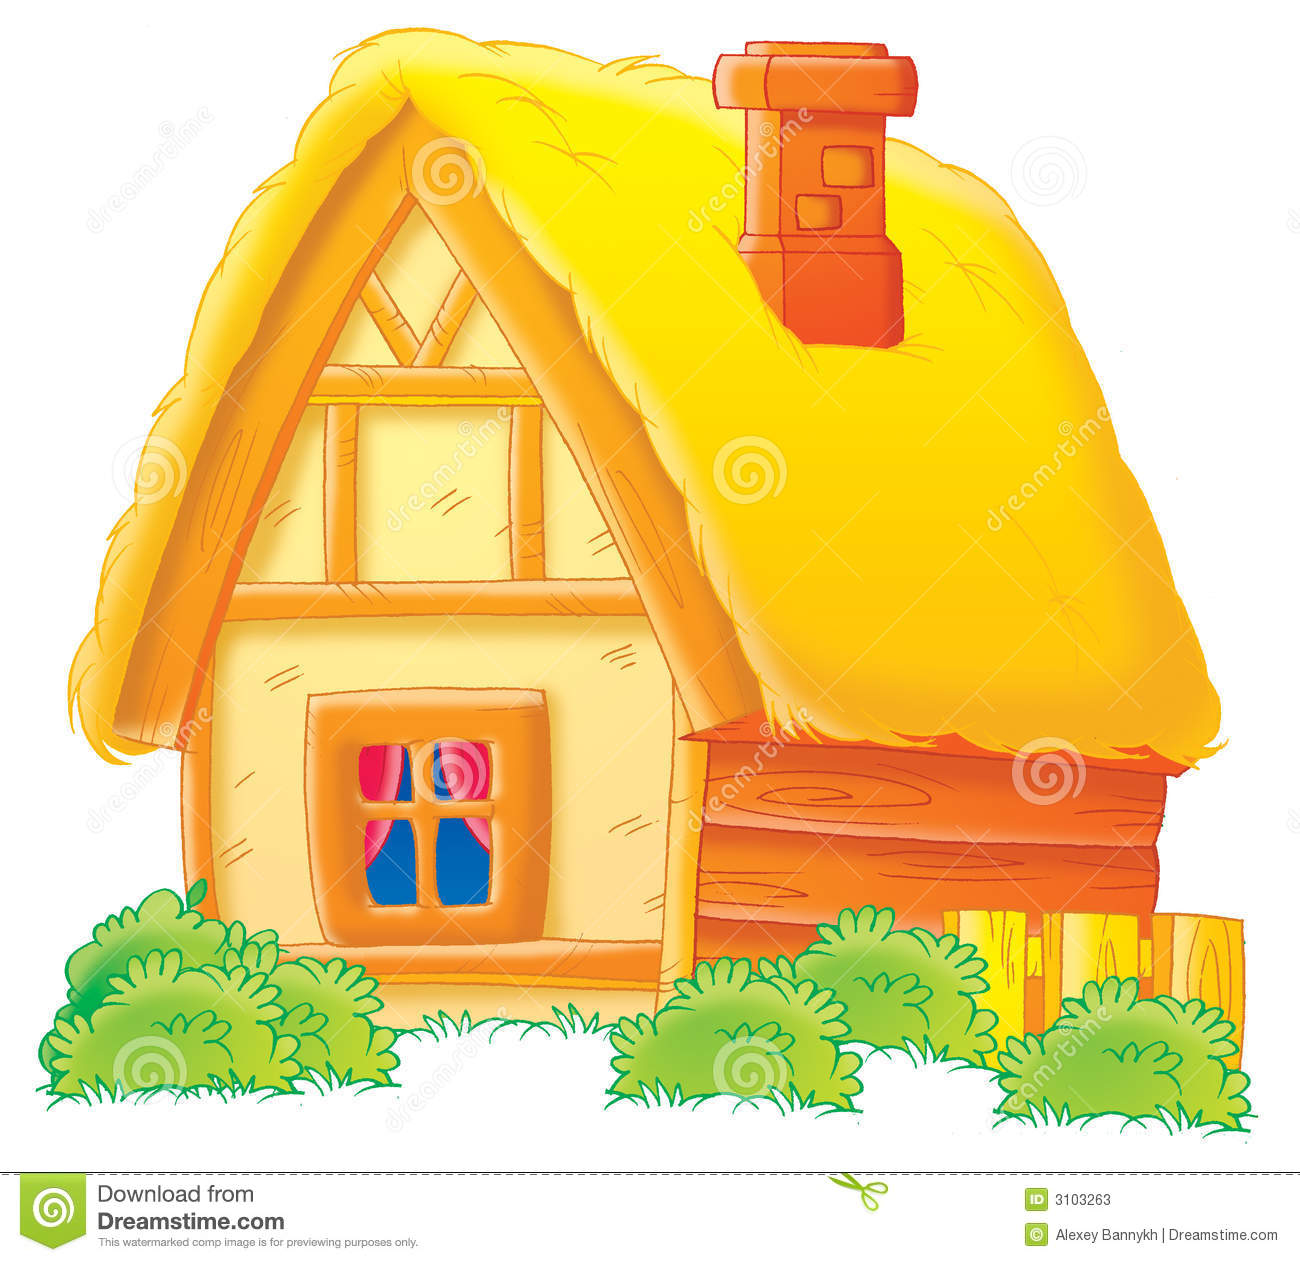 Clipart and farm house.